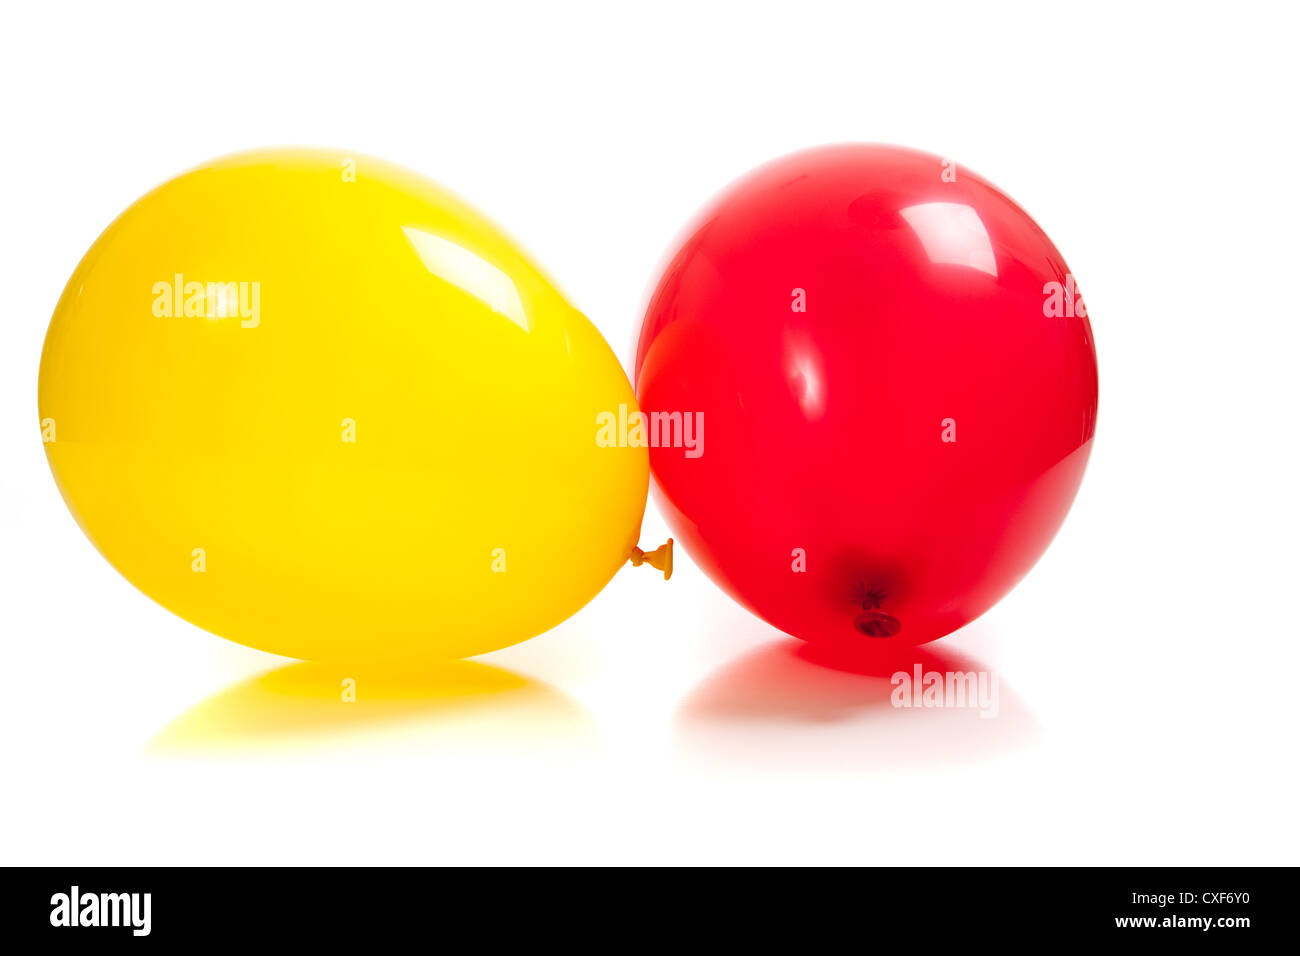 A red and yellow balloon on a white background - Stock Image